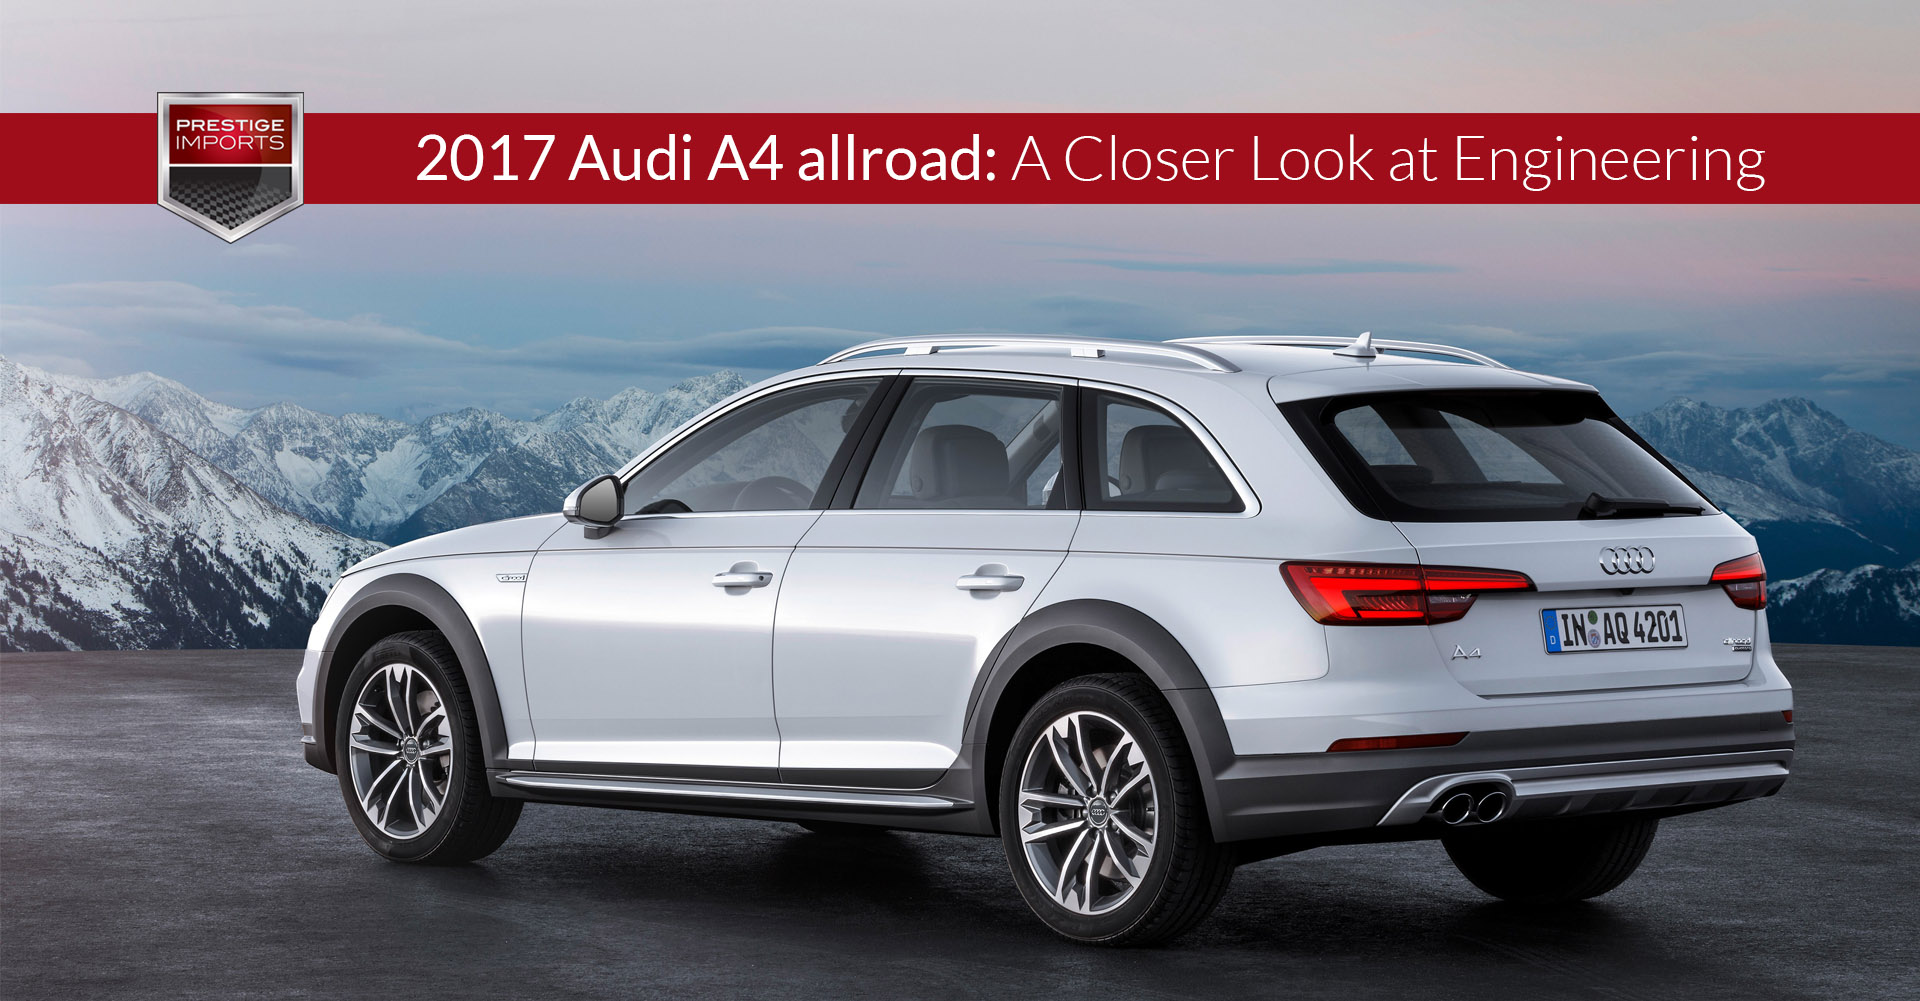 hight resolution of 2017 audi a4 allroad a closer look at engineering